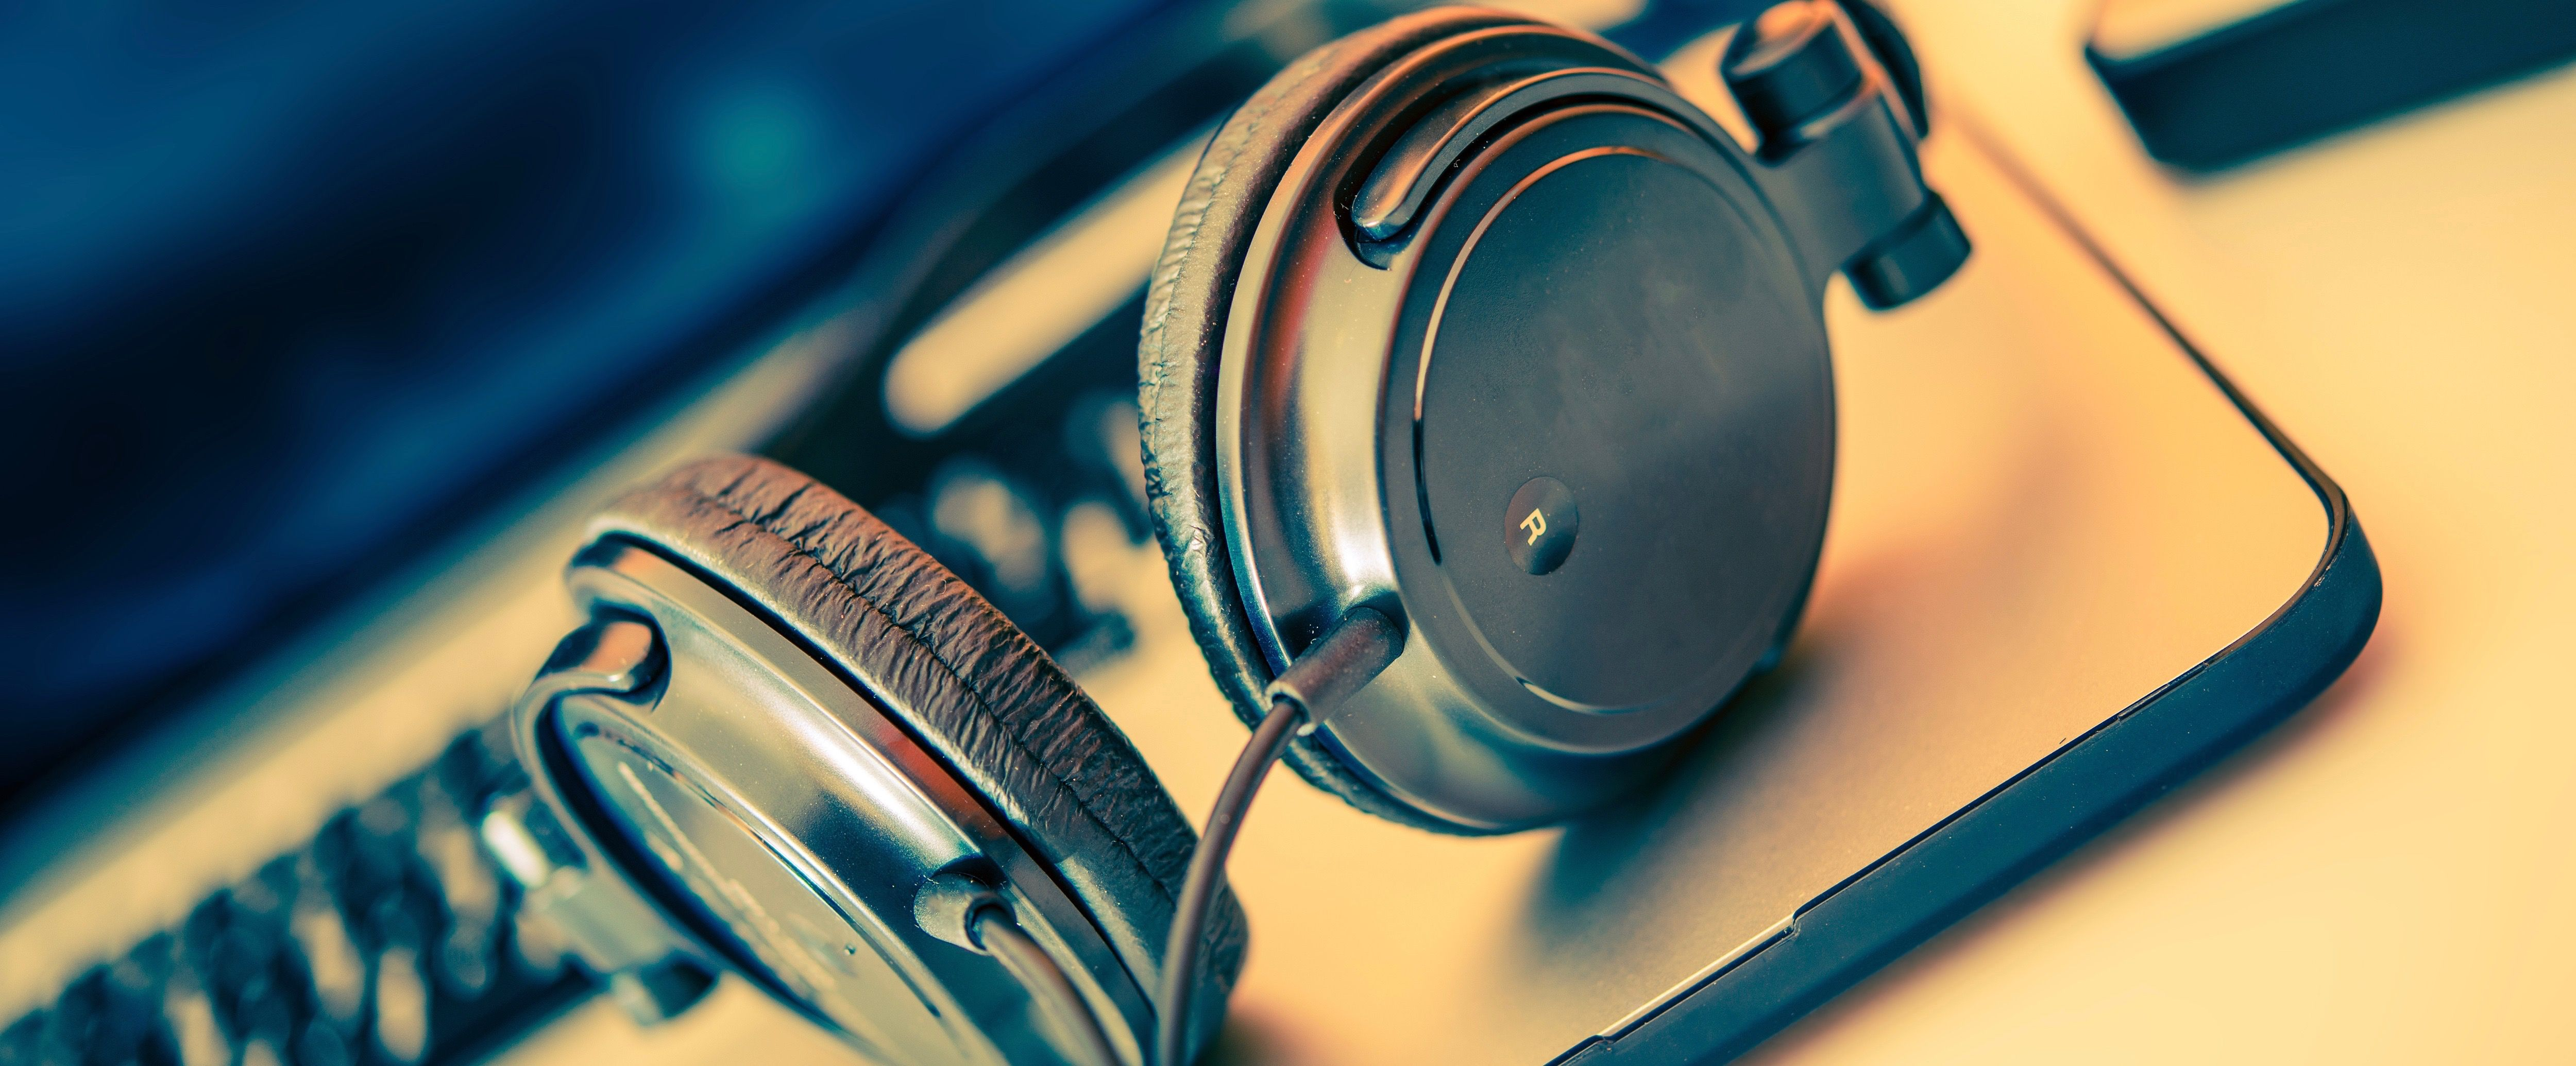 From the Phonograph to Spotify: The History of Streaming Music